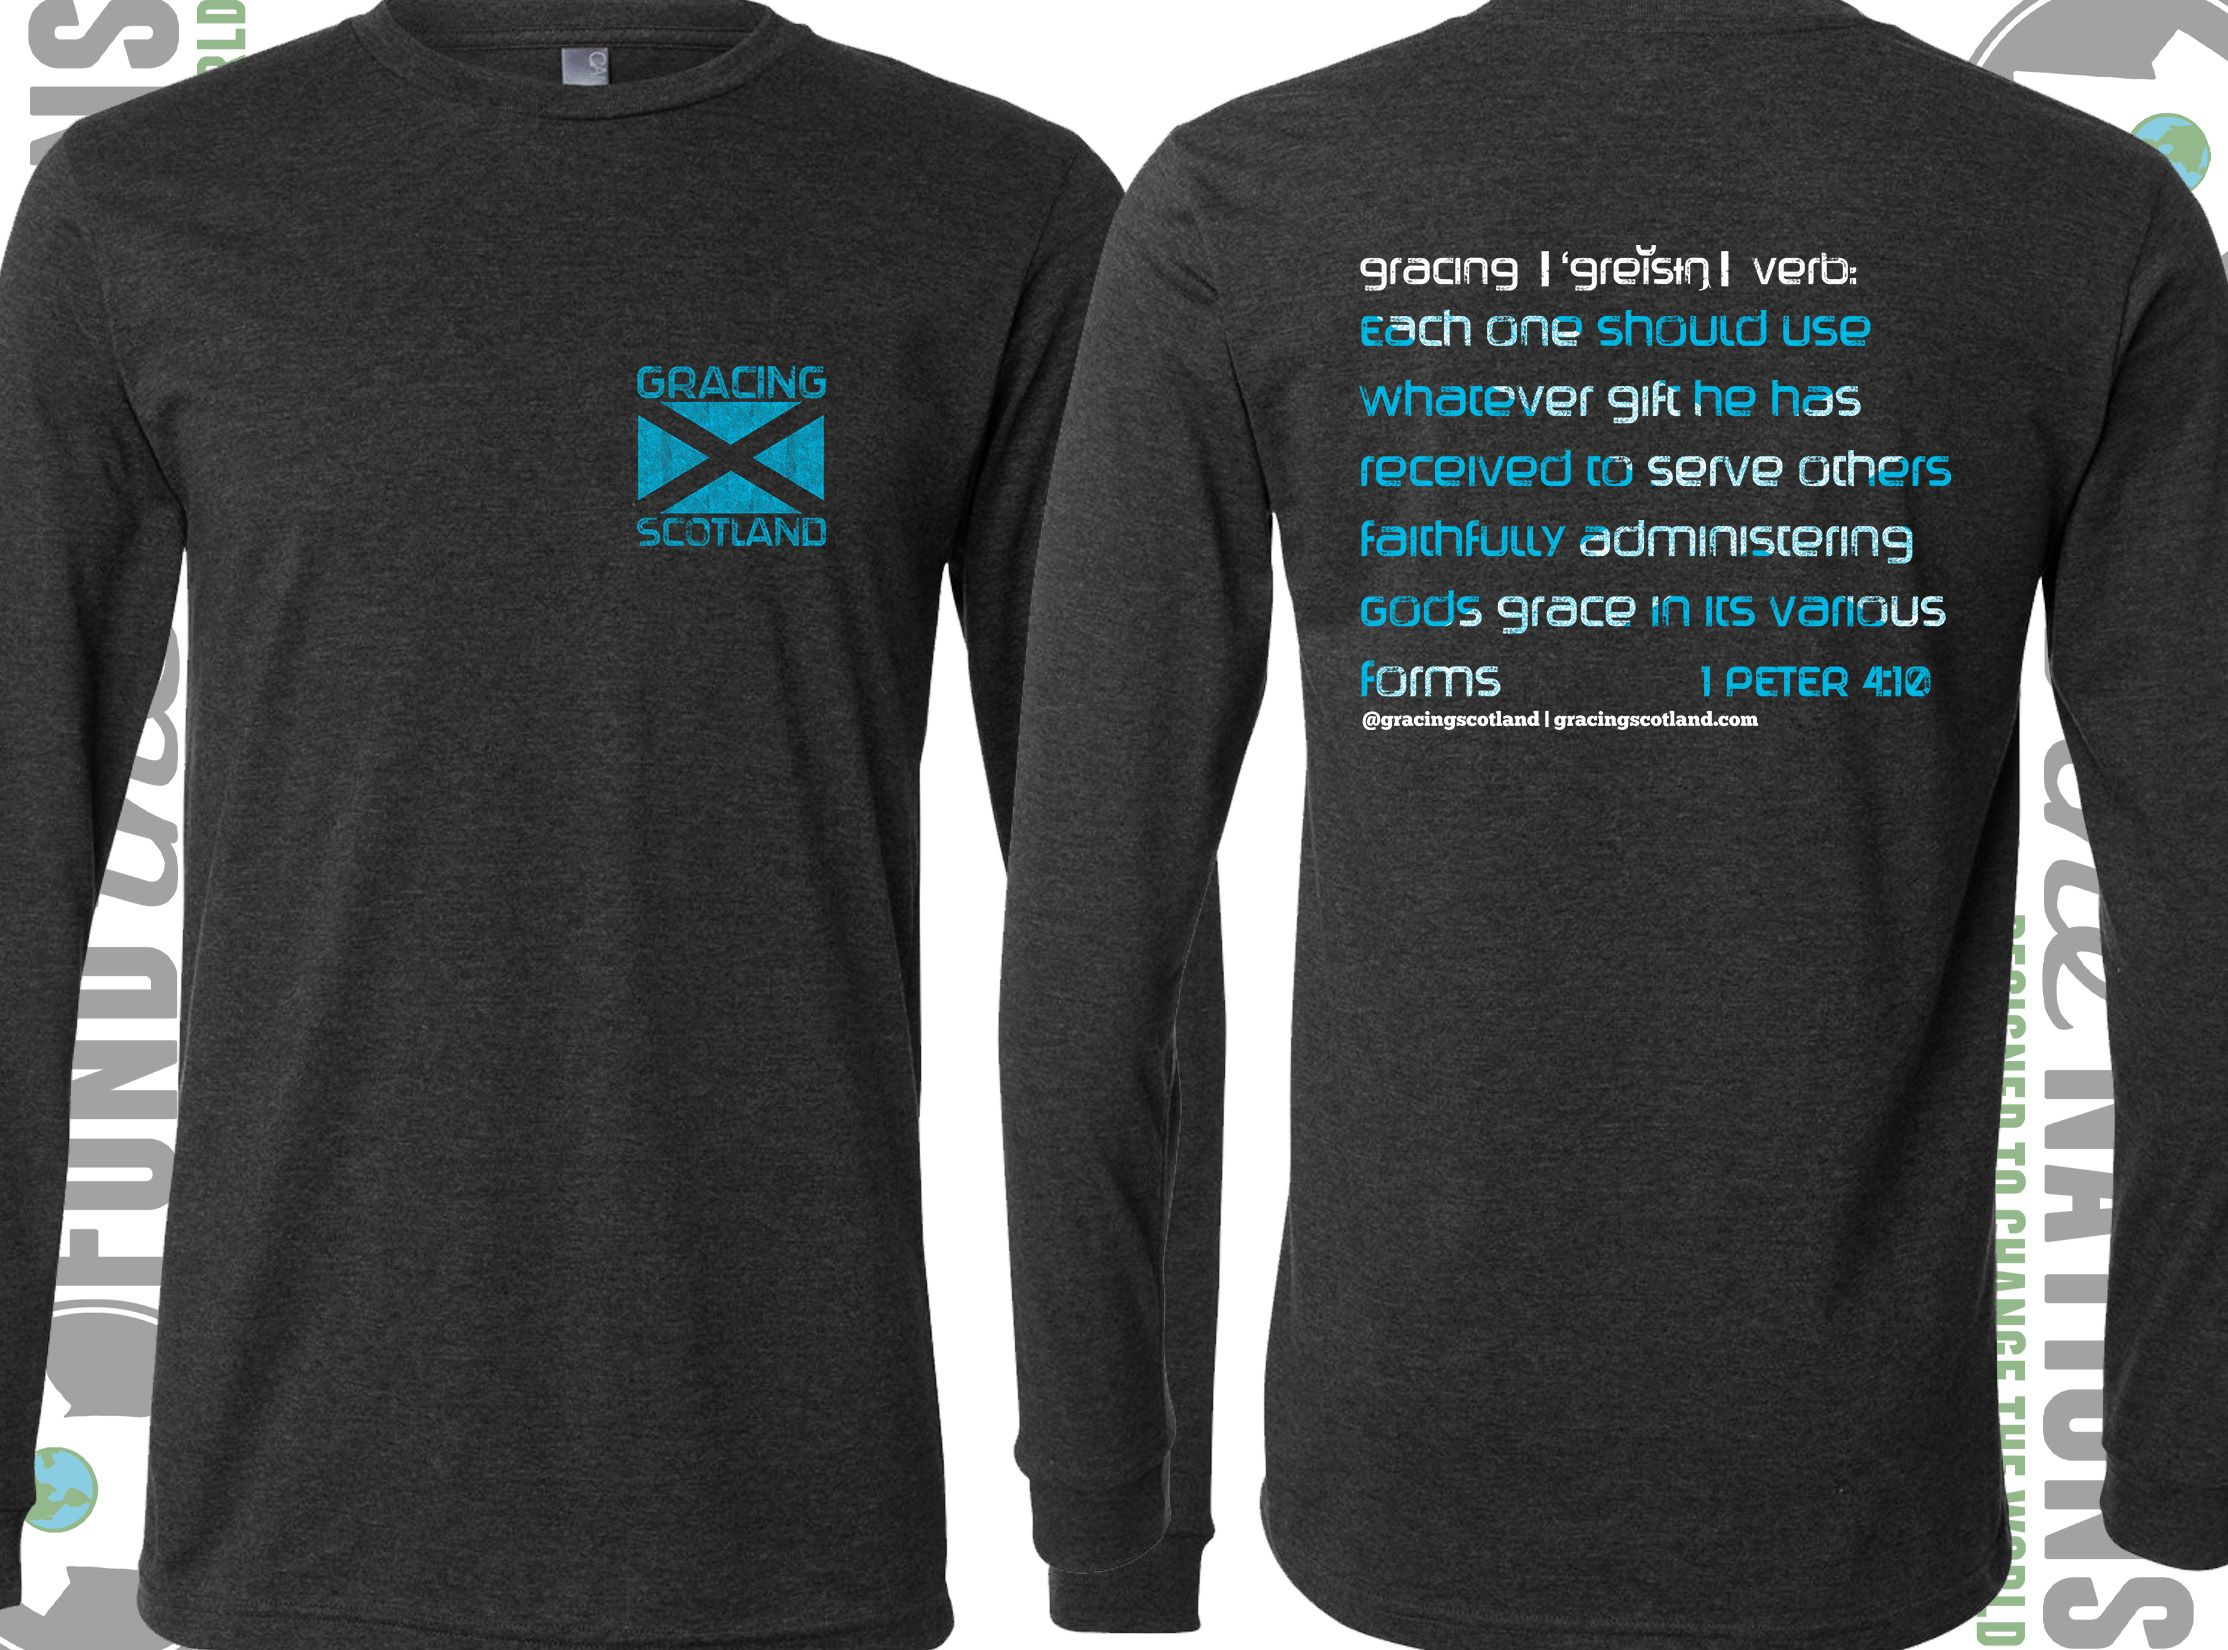 long sleeve - final.jpg